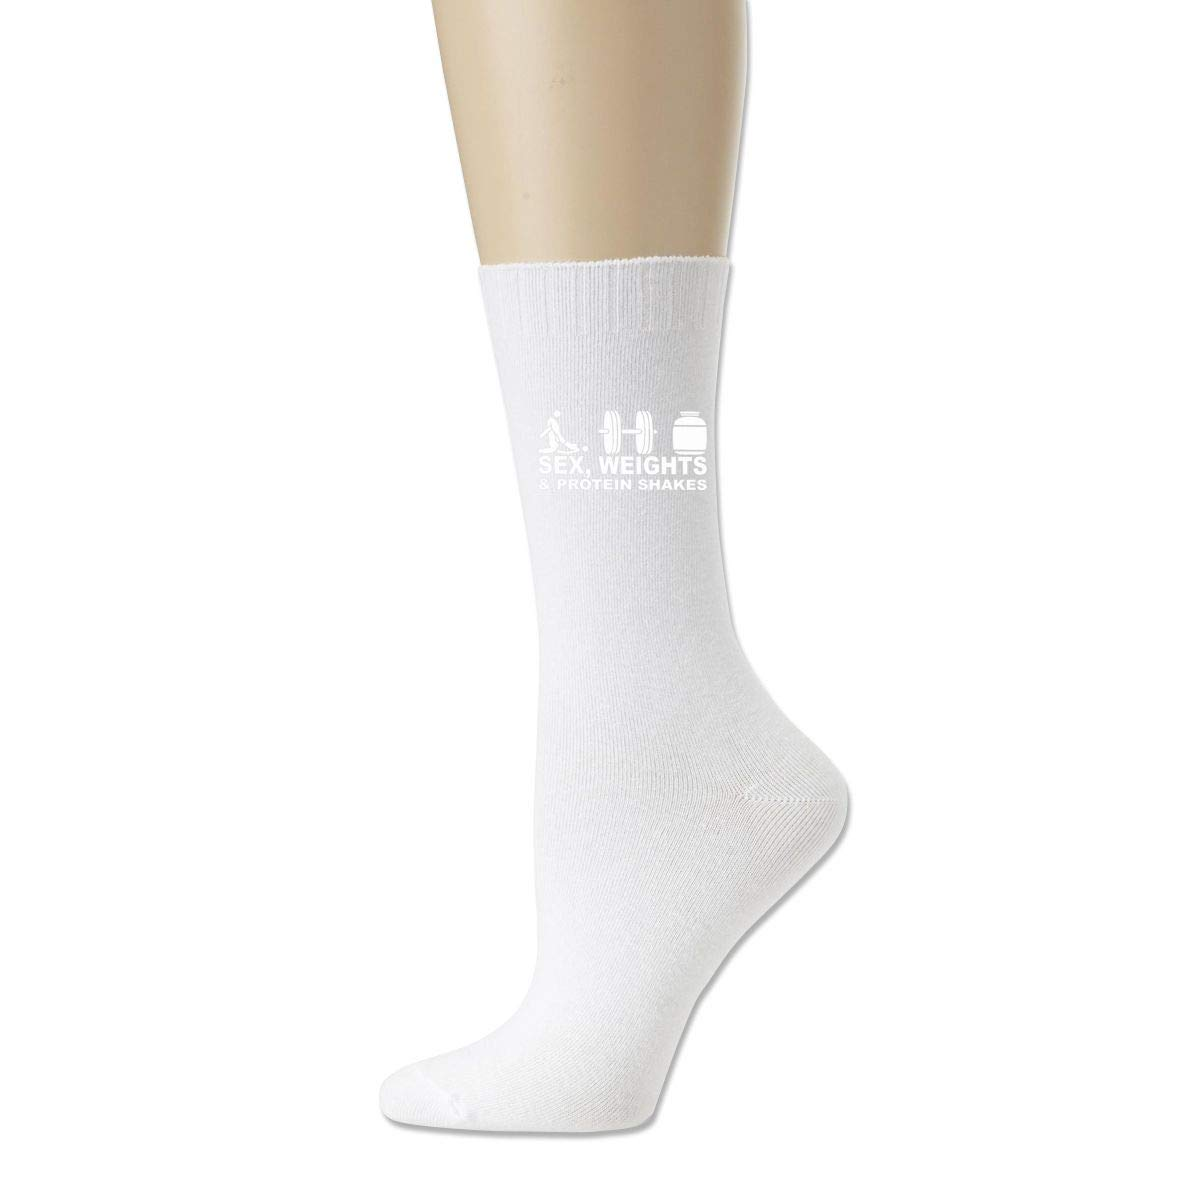 Men High Ankle Cotton Crew Socks Sex Weights Protein Shakes Casual Sport Stocking